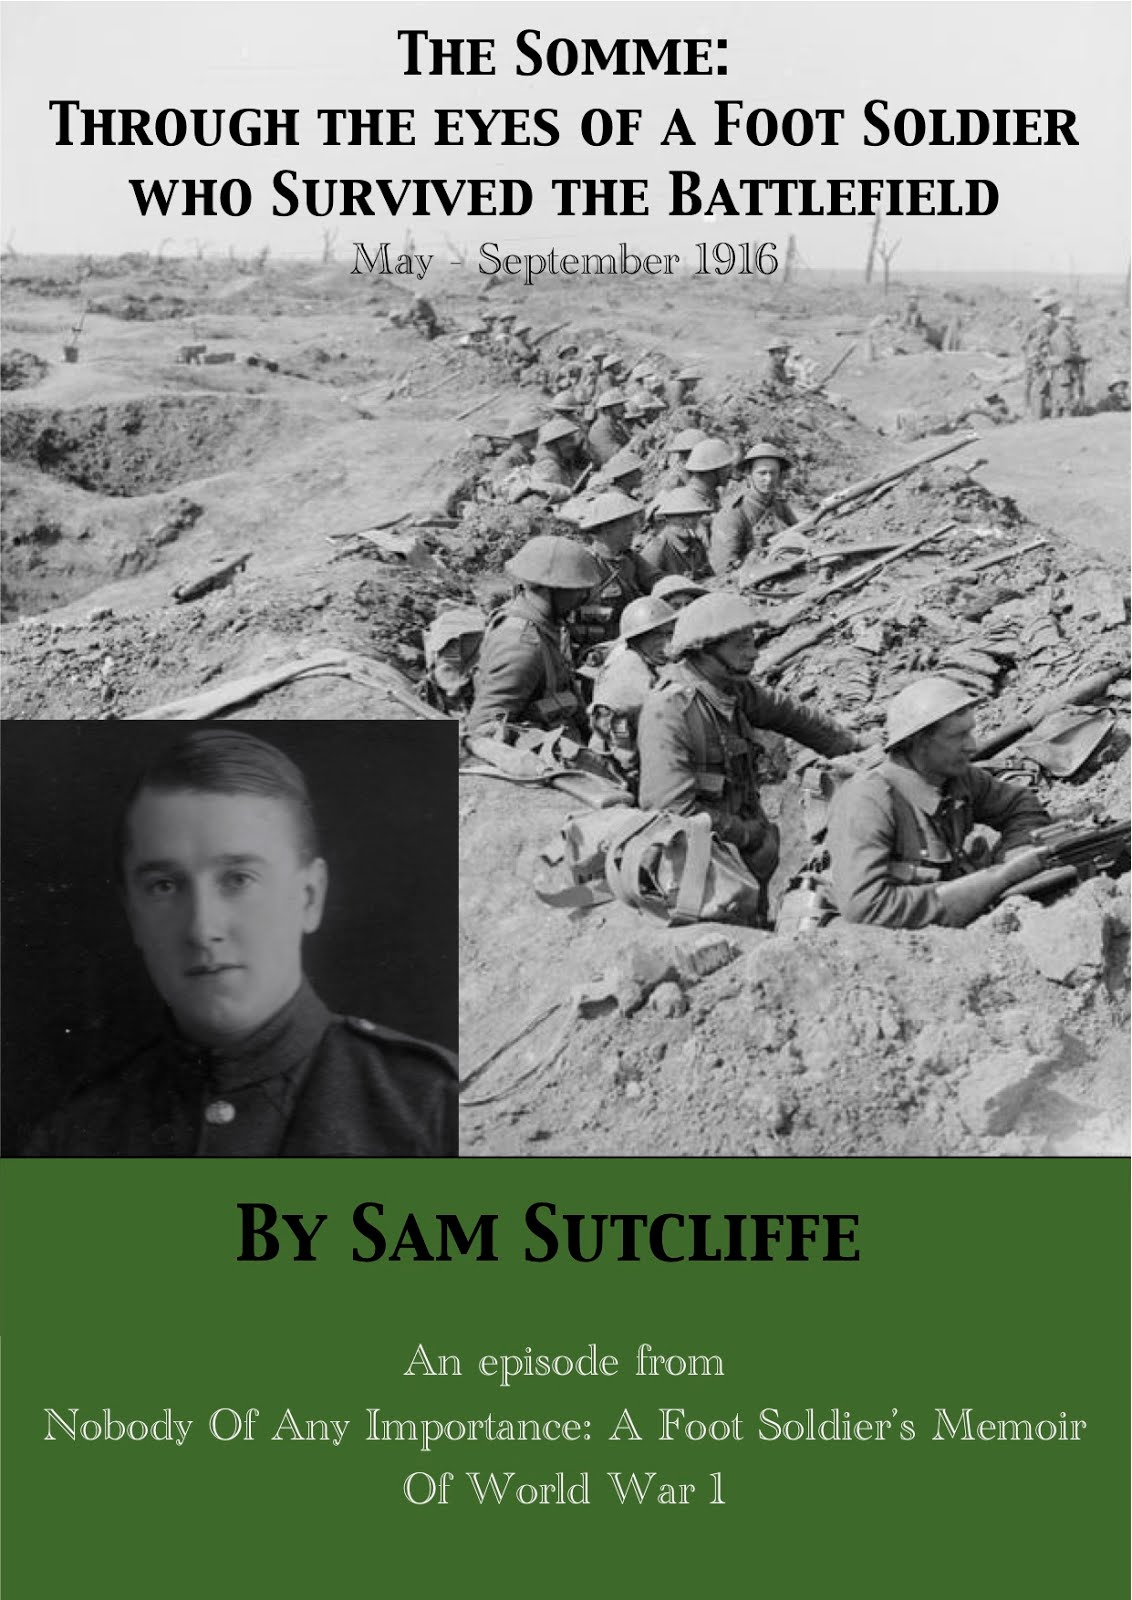 Sam on the Somme Front - e-book excerpt from his Nobody Of Any Importance Memoir.